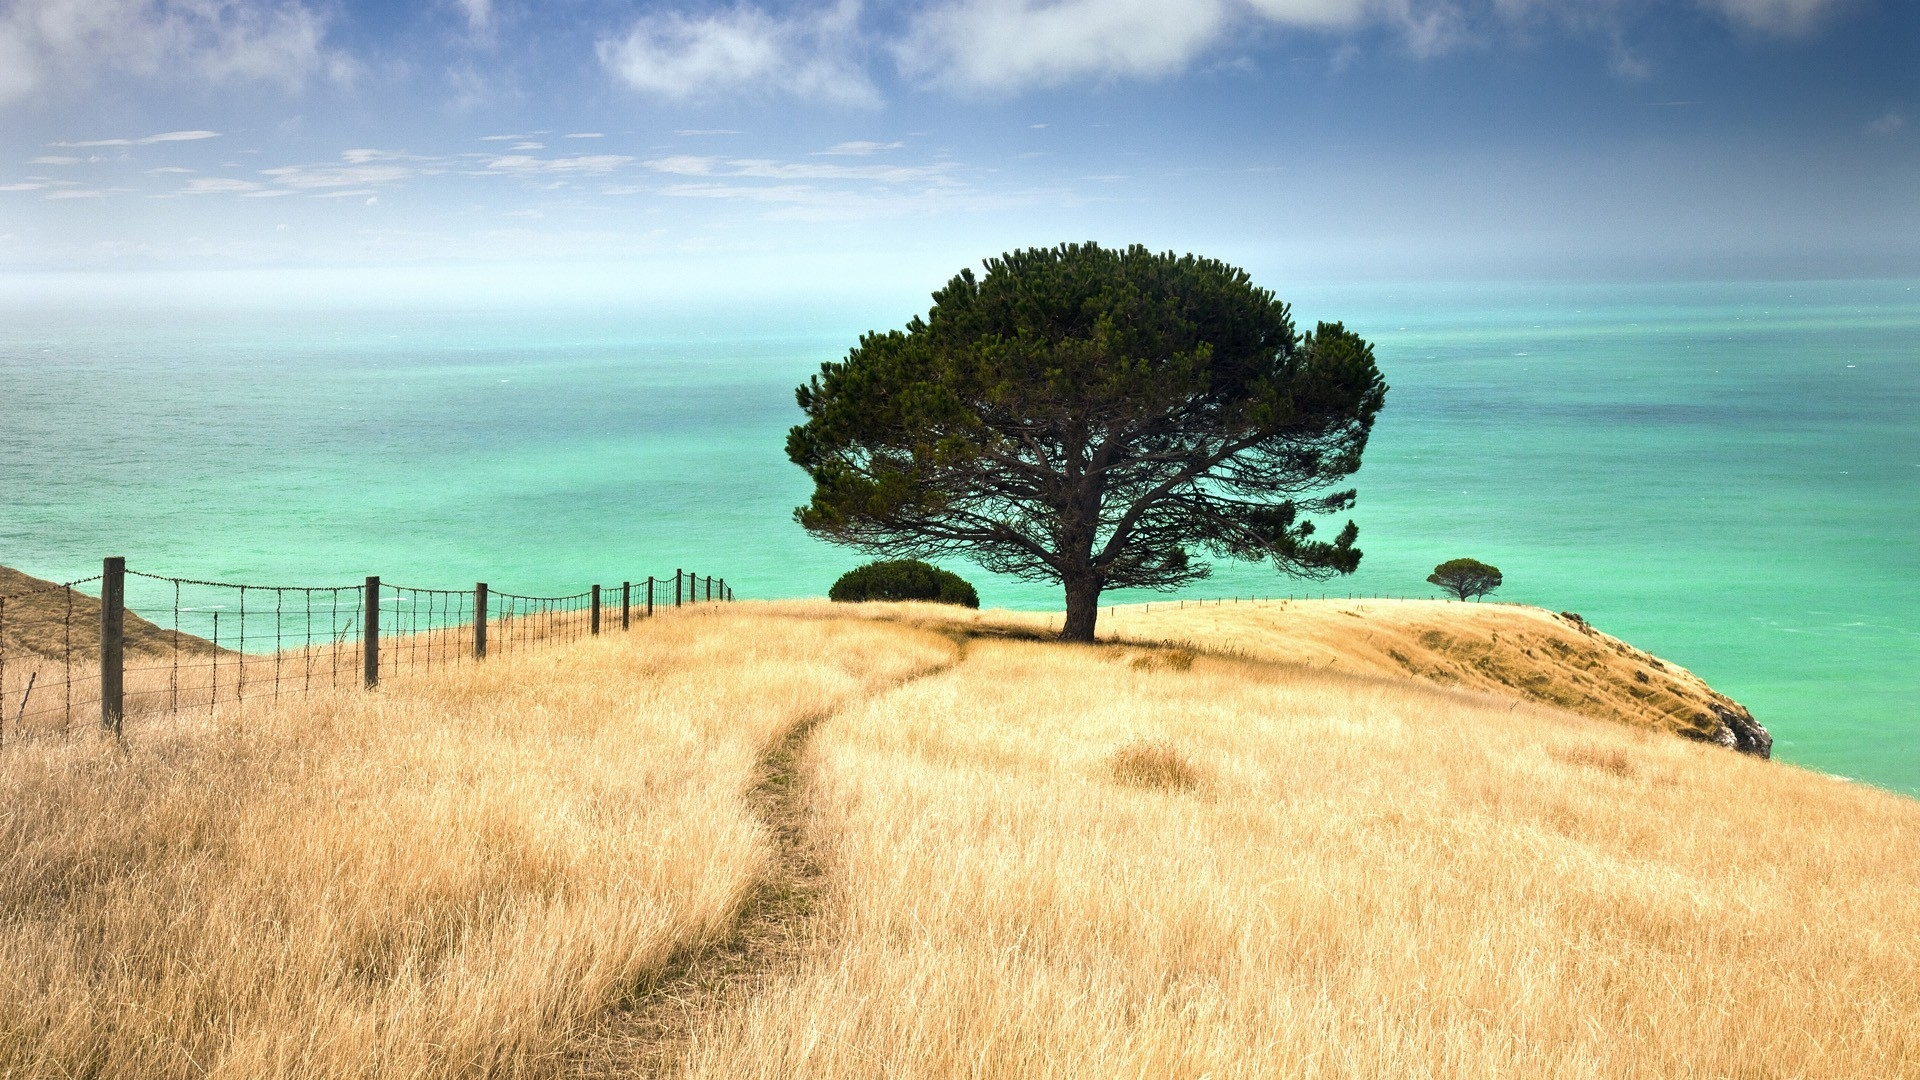 Best-background-images-new-zealand-New-Zealand-Best-intended-for-Backgroun-wallpaper-wp3403084